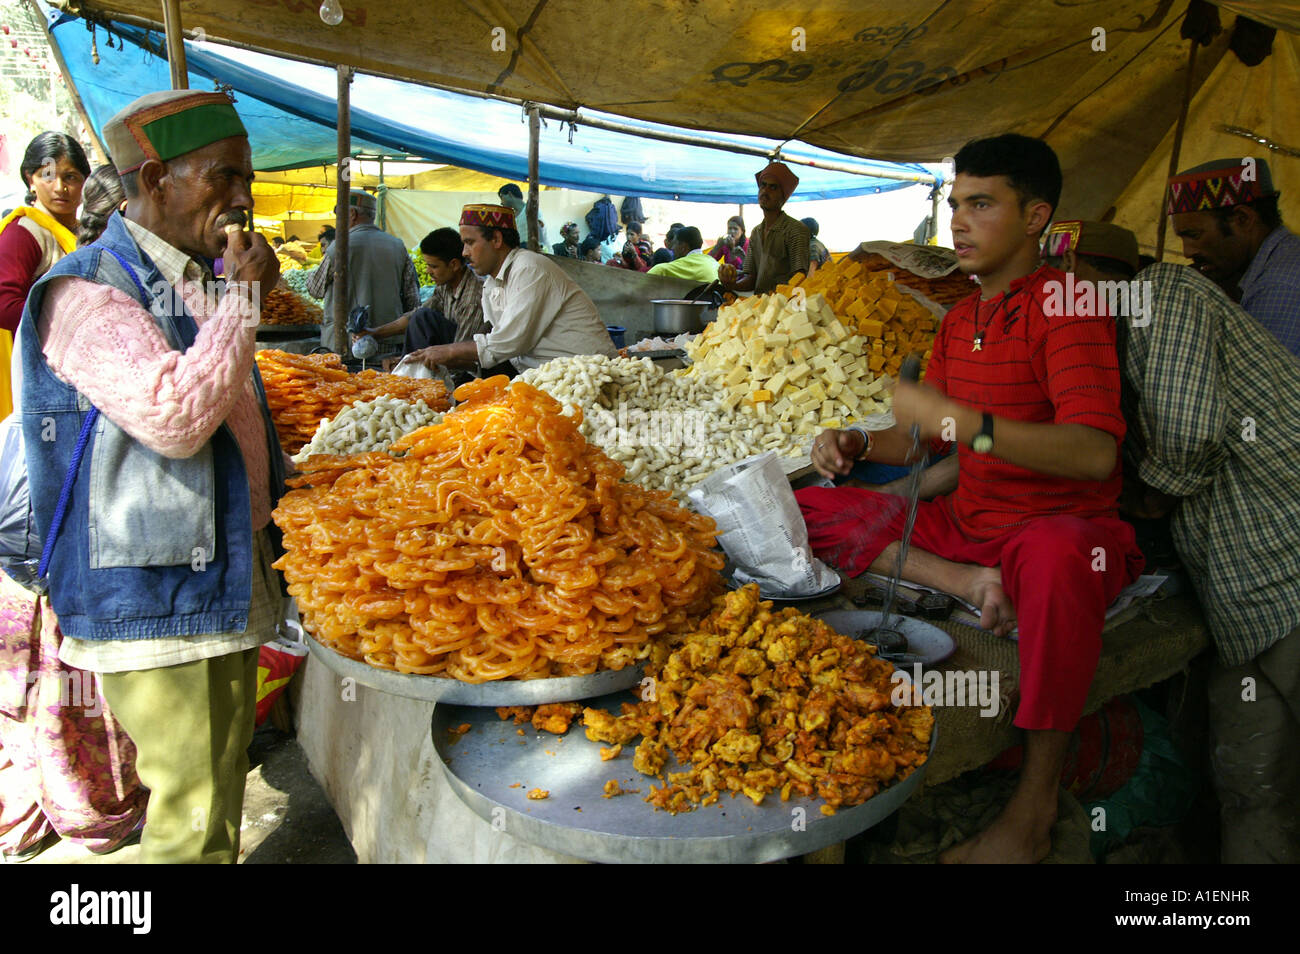 Man weighing sweets at Dussehra fair with enormous variety of rich Indian cuisine meals, Kullu, India - Stock Image